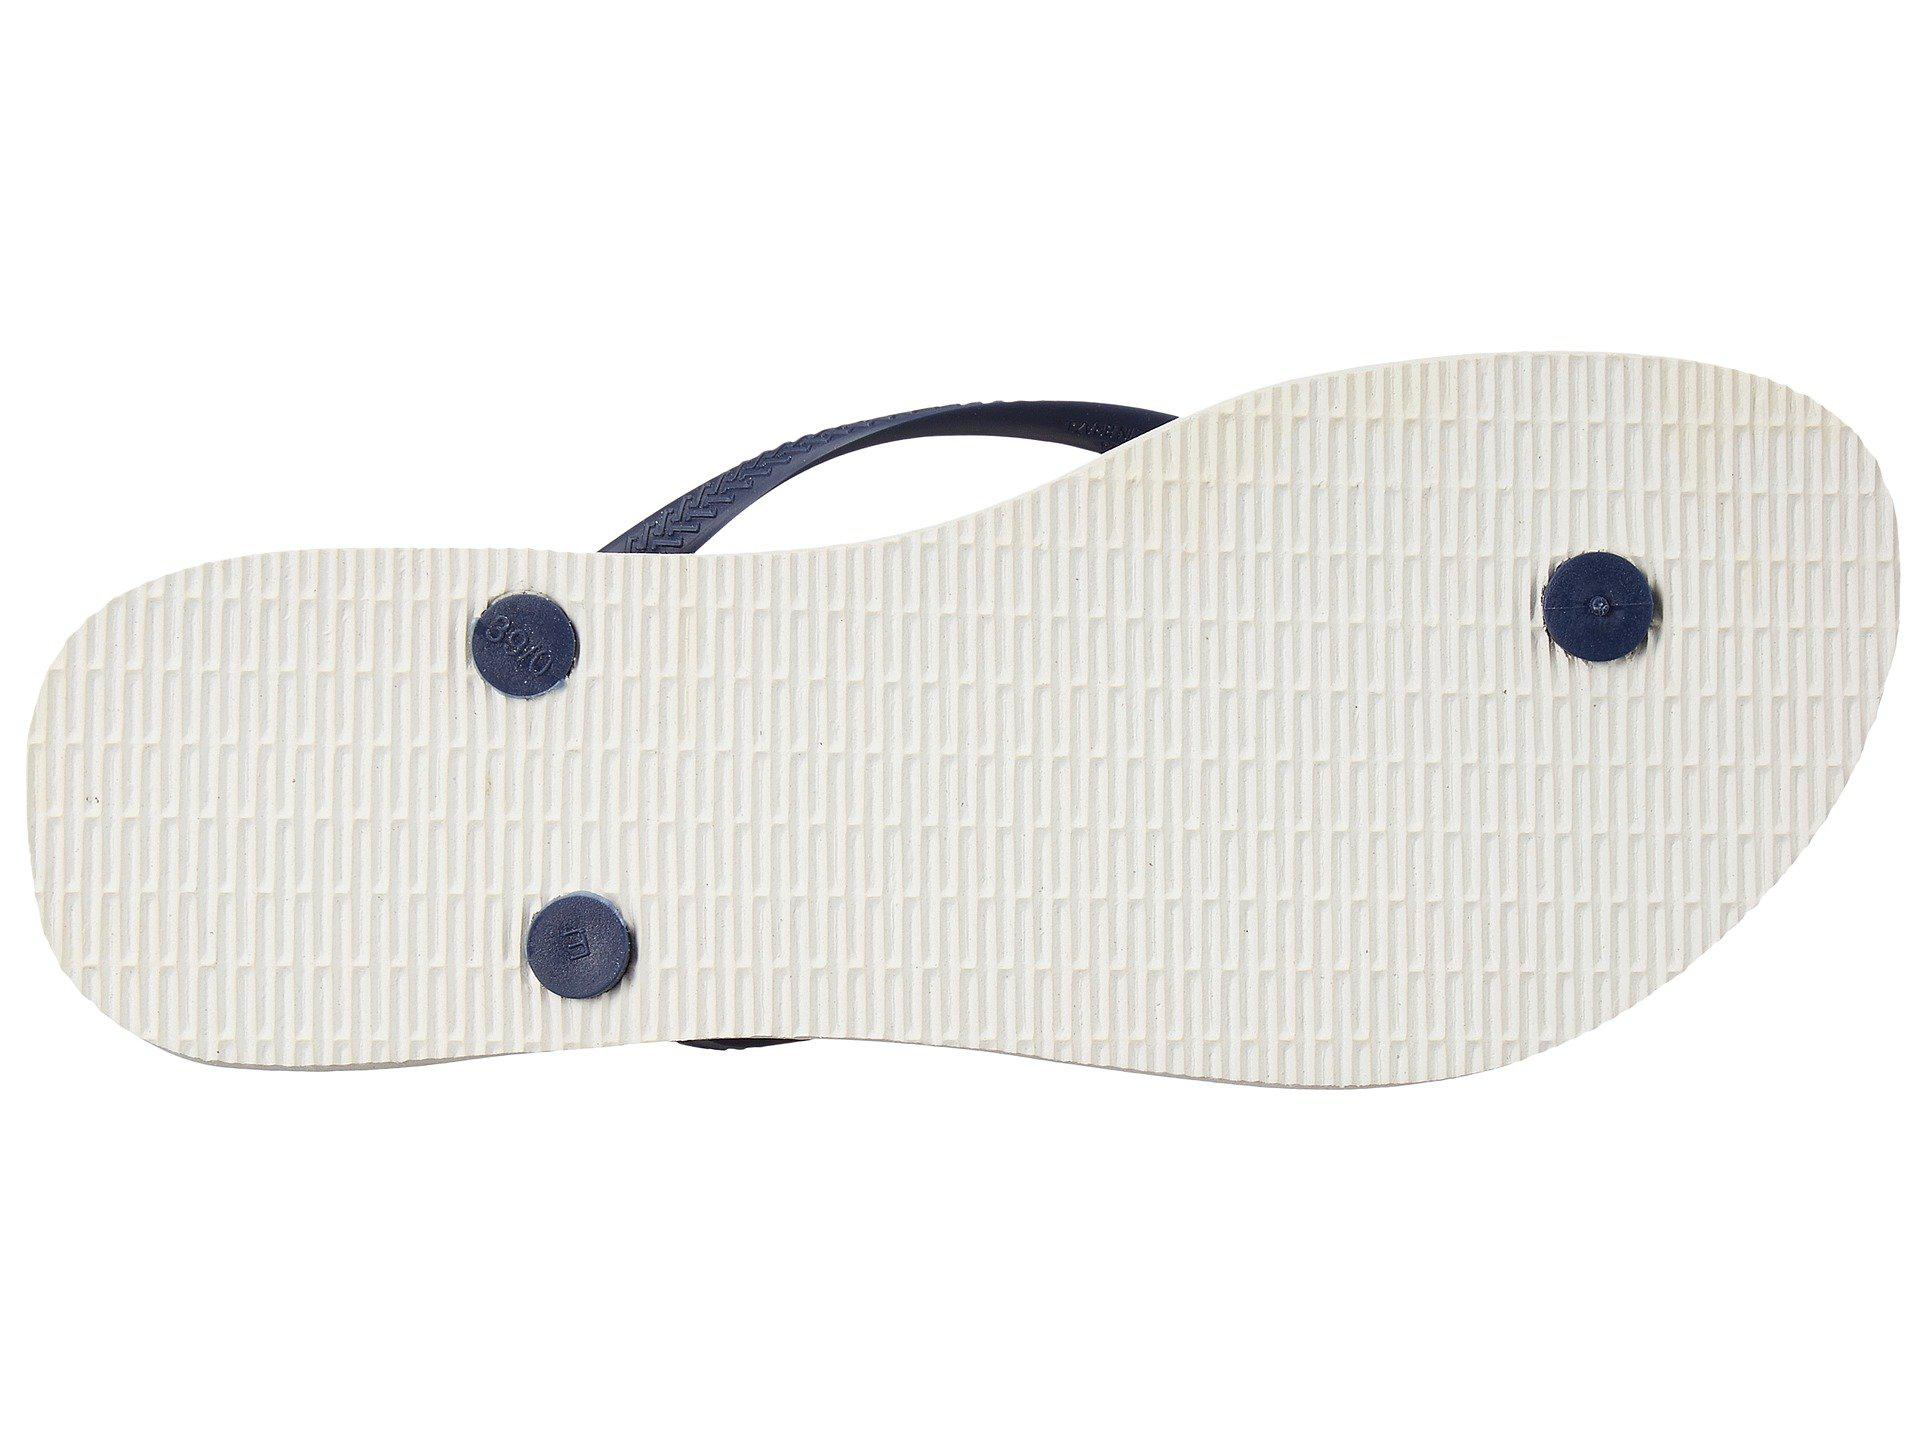 a95647469 Lyst - Havaianas Slim Thematic Flip Flops in Blue - Save 58%